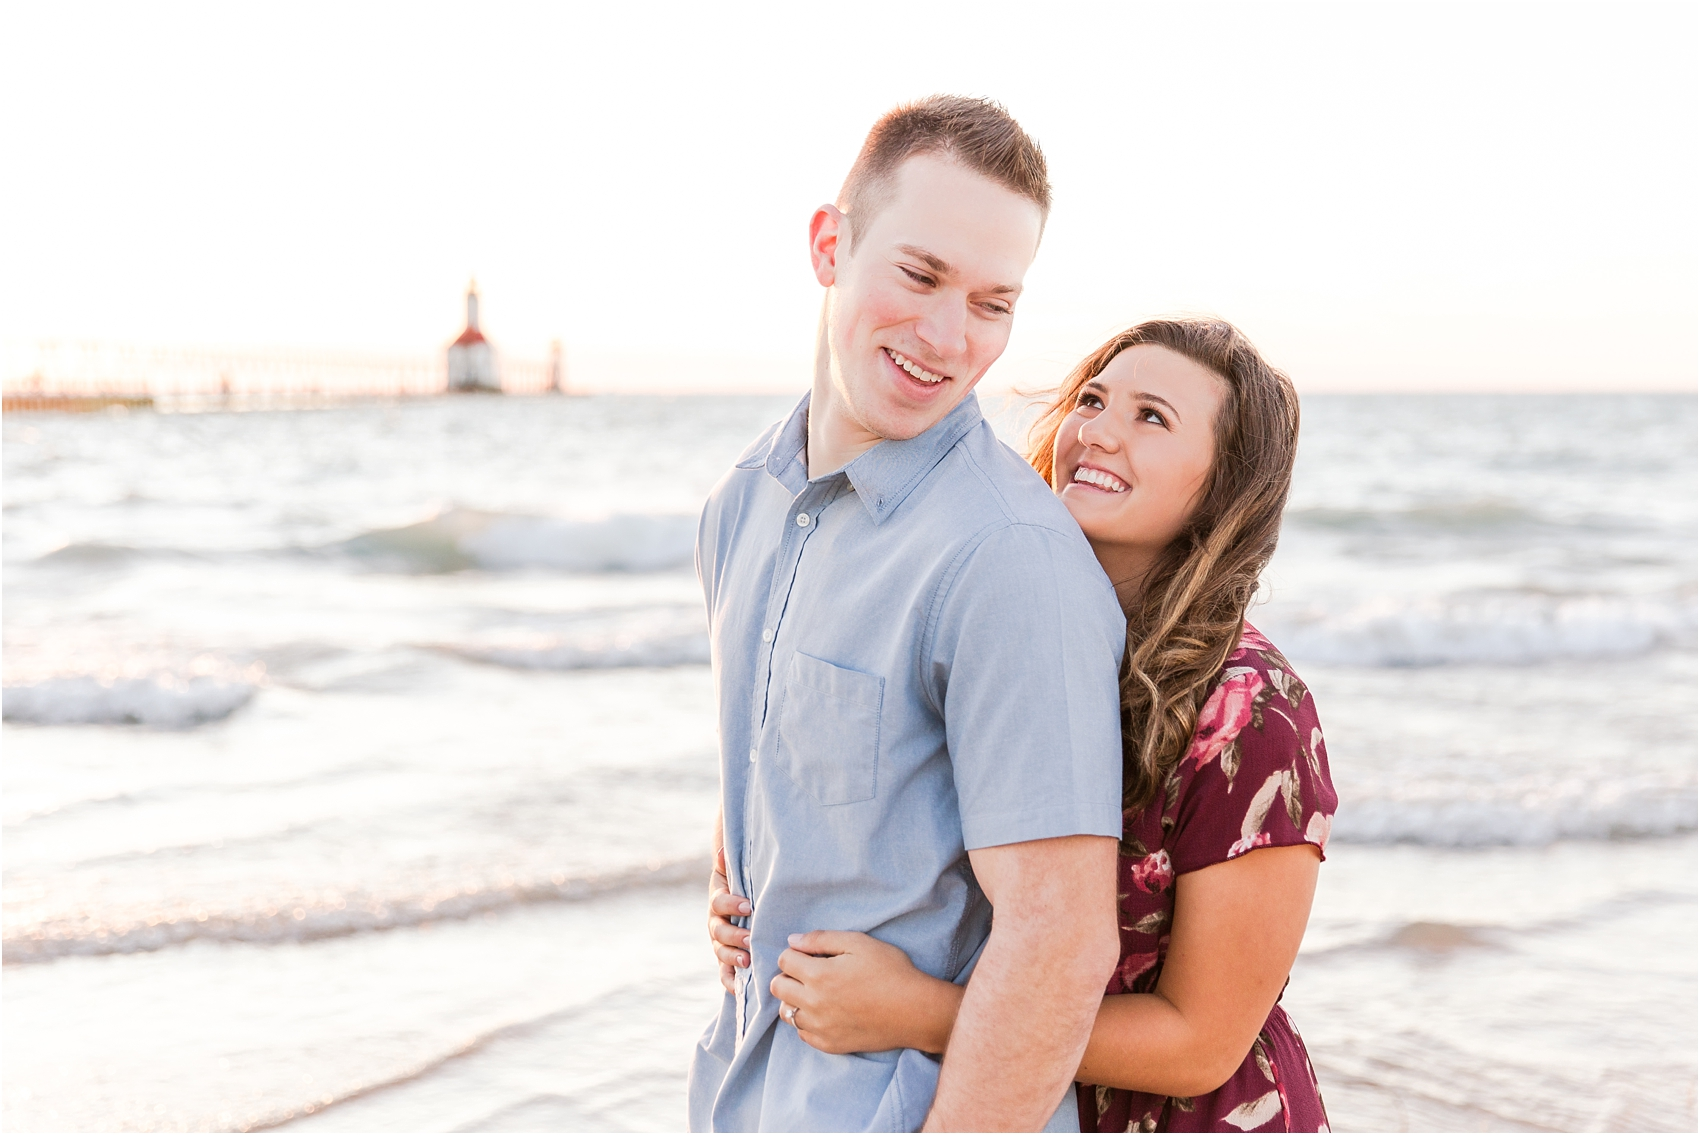 emotional-candid-romantic-engagement-photos-in-detroit-chicago-northern-michigan-by-courtney-carolyn-photography_0045.jpg